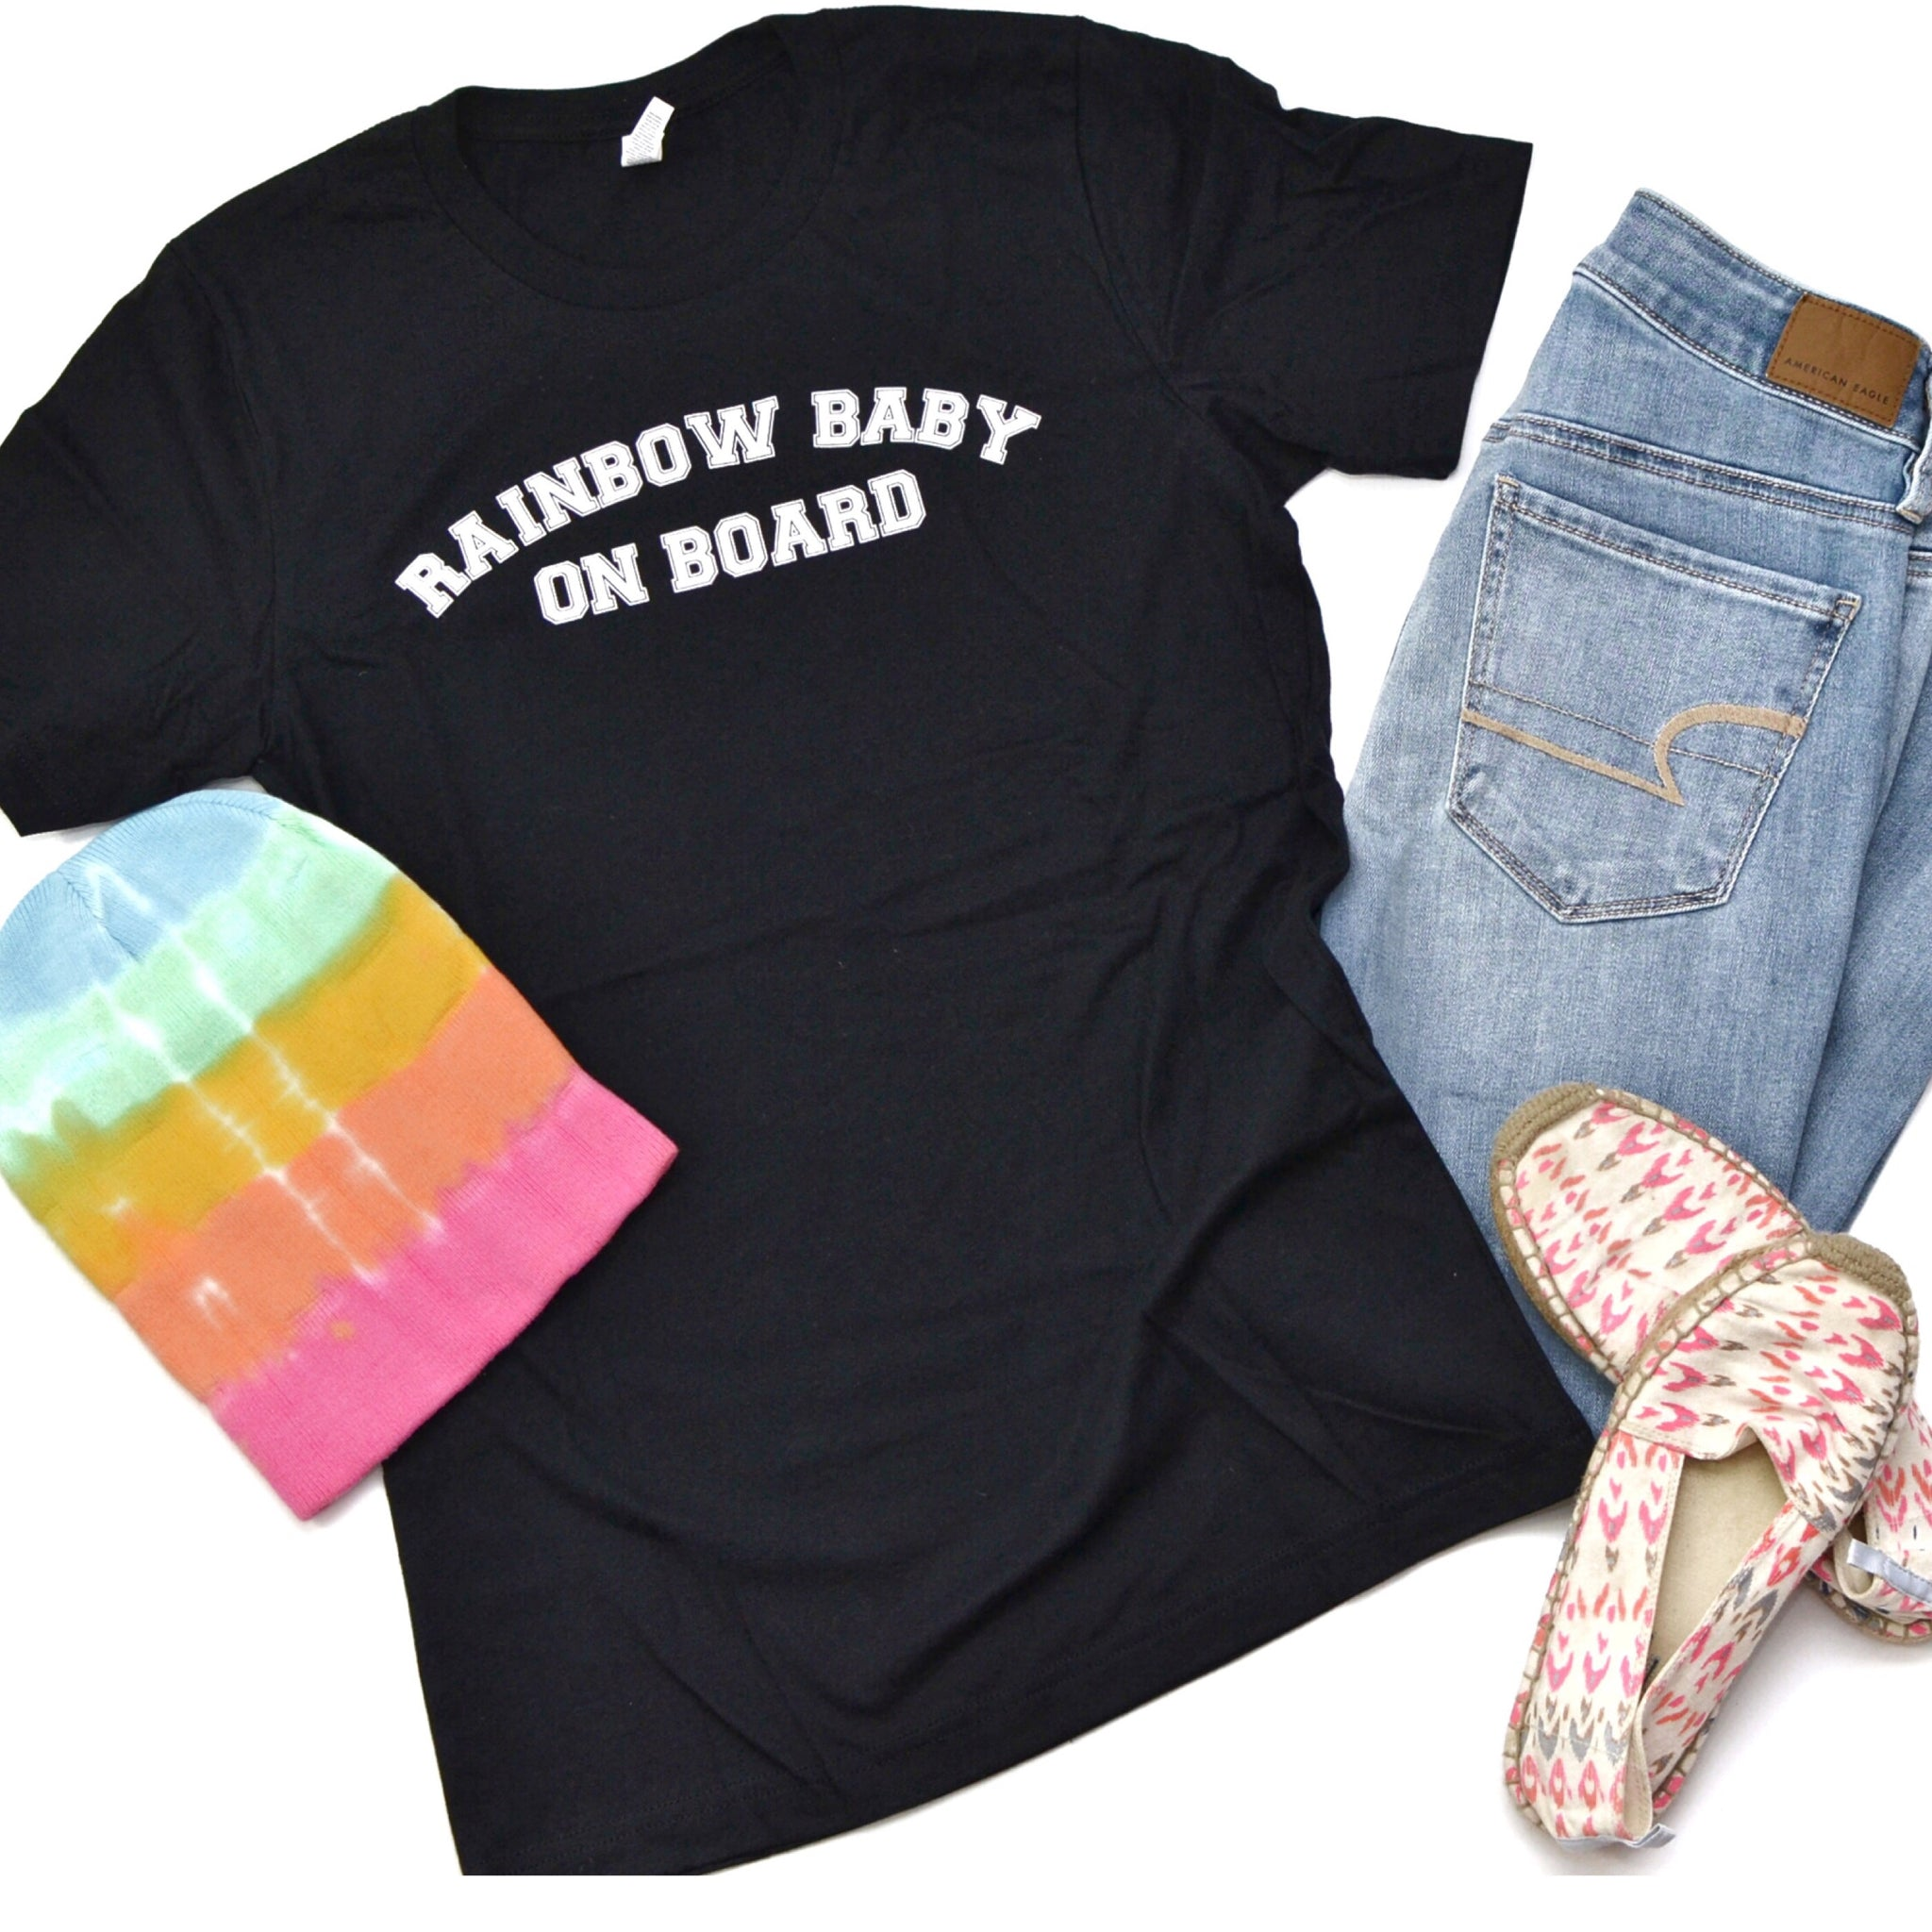 Rainbow Baby On Board [Black Crewneck]